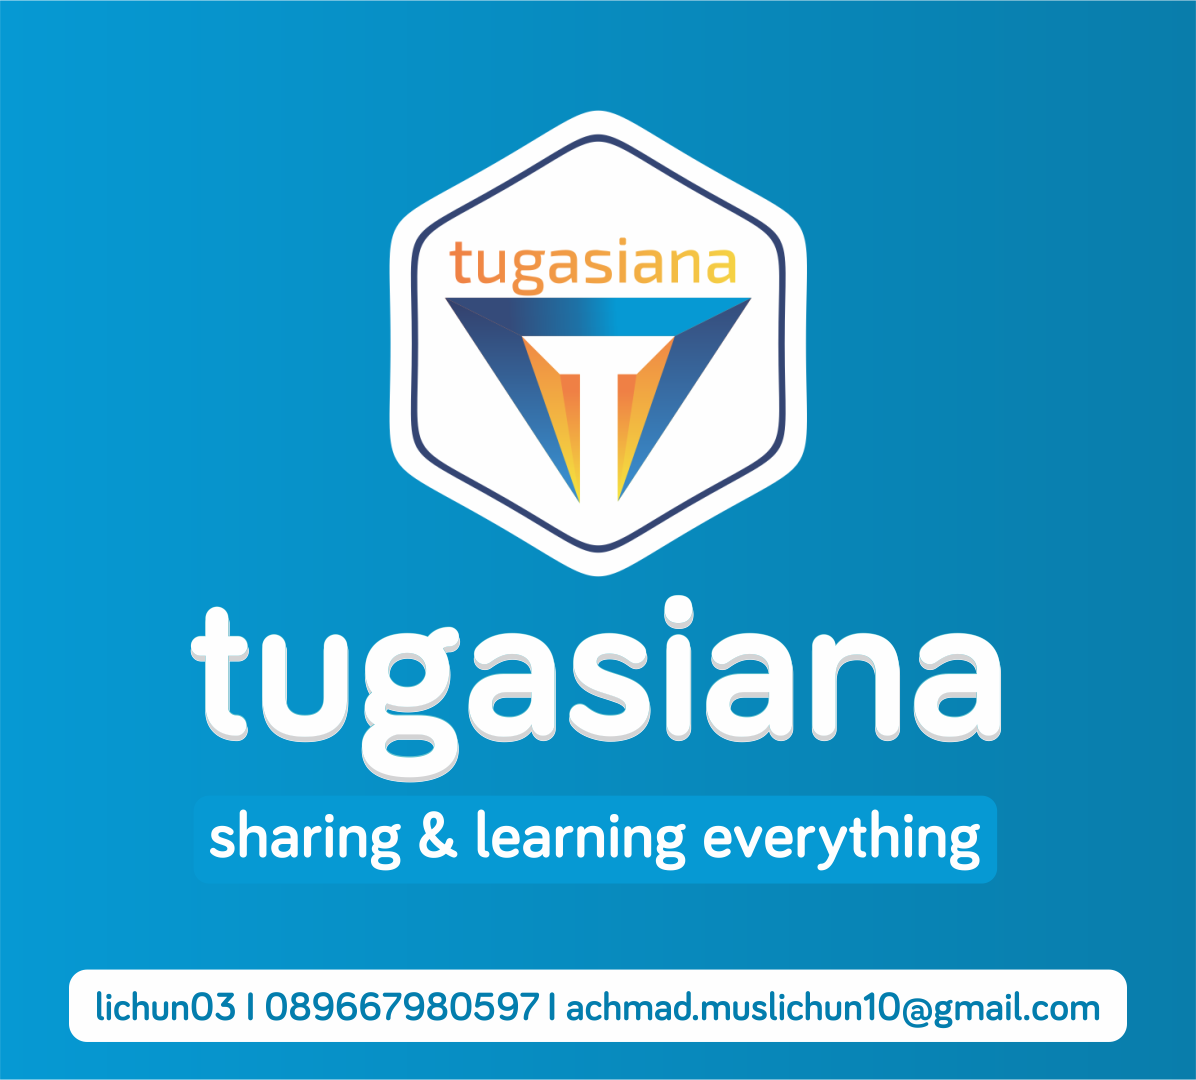 About Tugasiana